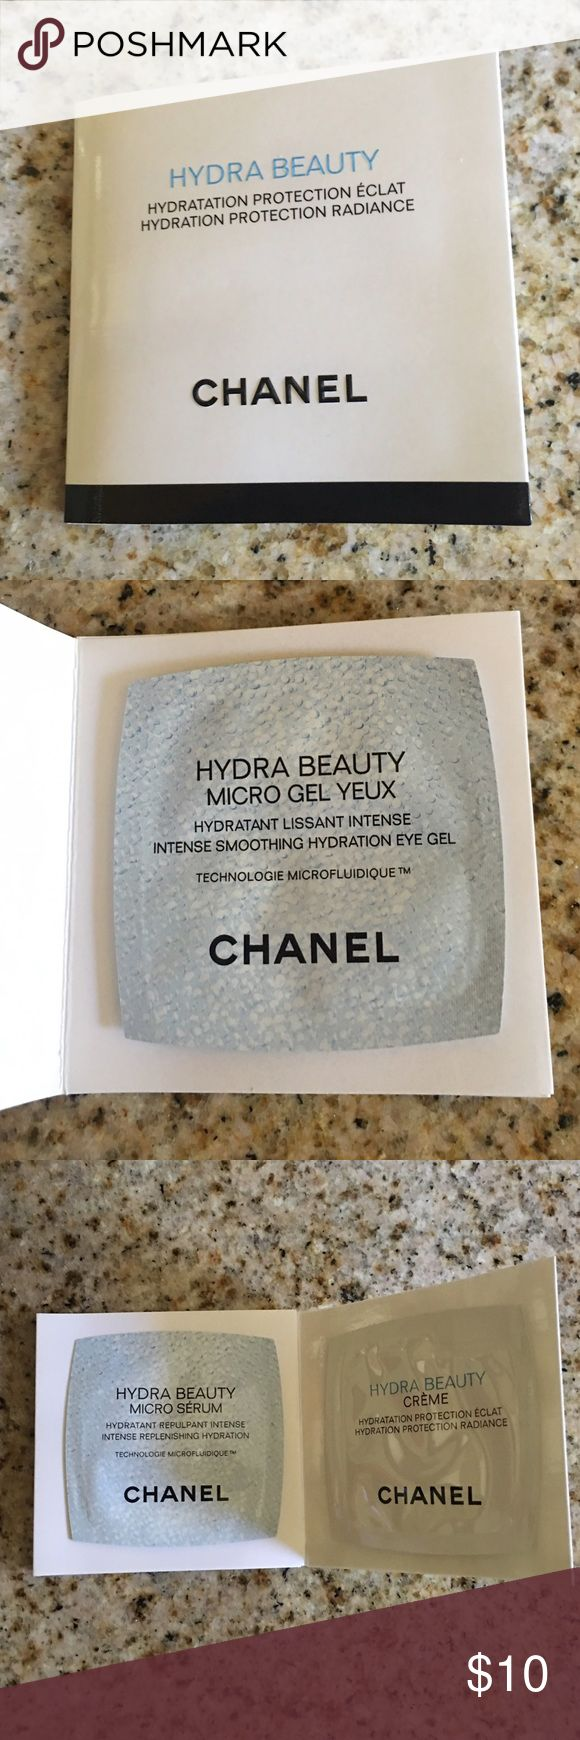 Chanel Hydra Beauty Samples Chanel beauty samples include: Micro gel yeux (0.025 fl. oz), Micro serum (0.025 fl. oz) and Creme (0.03 fl. oz). CHANEL Makeup